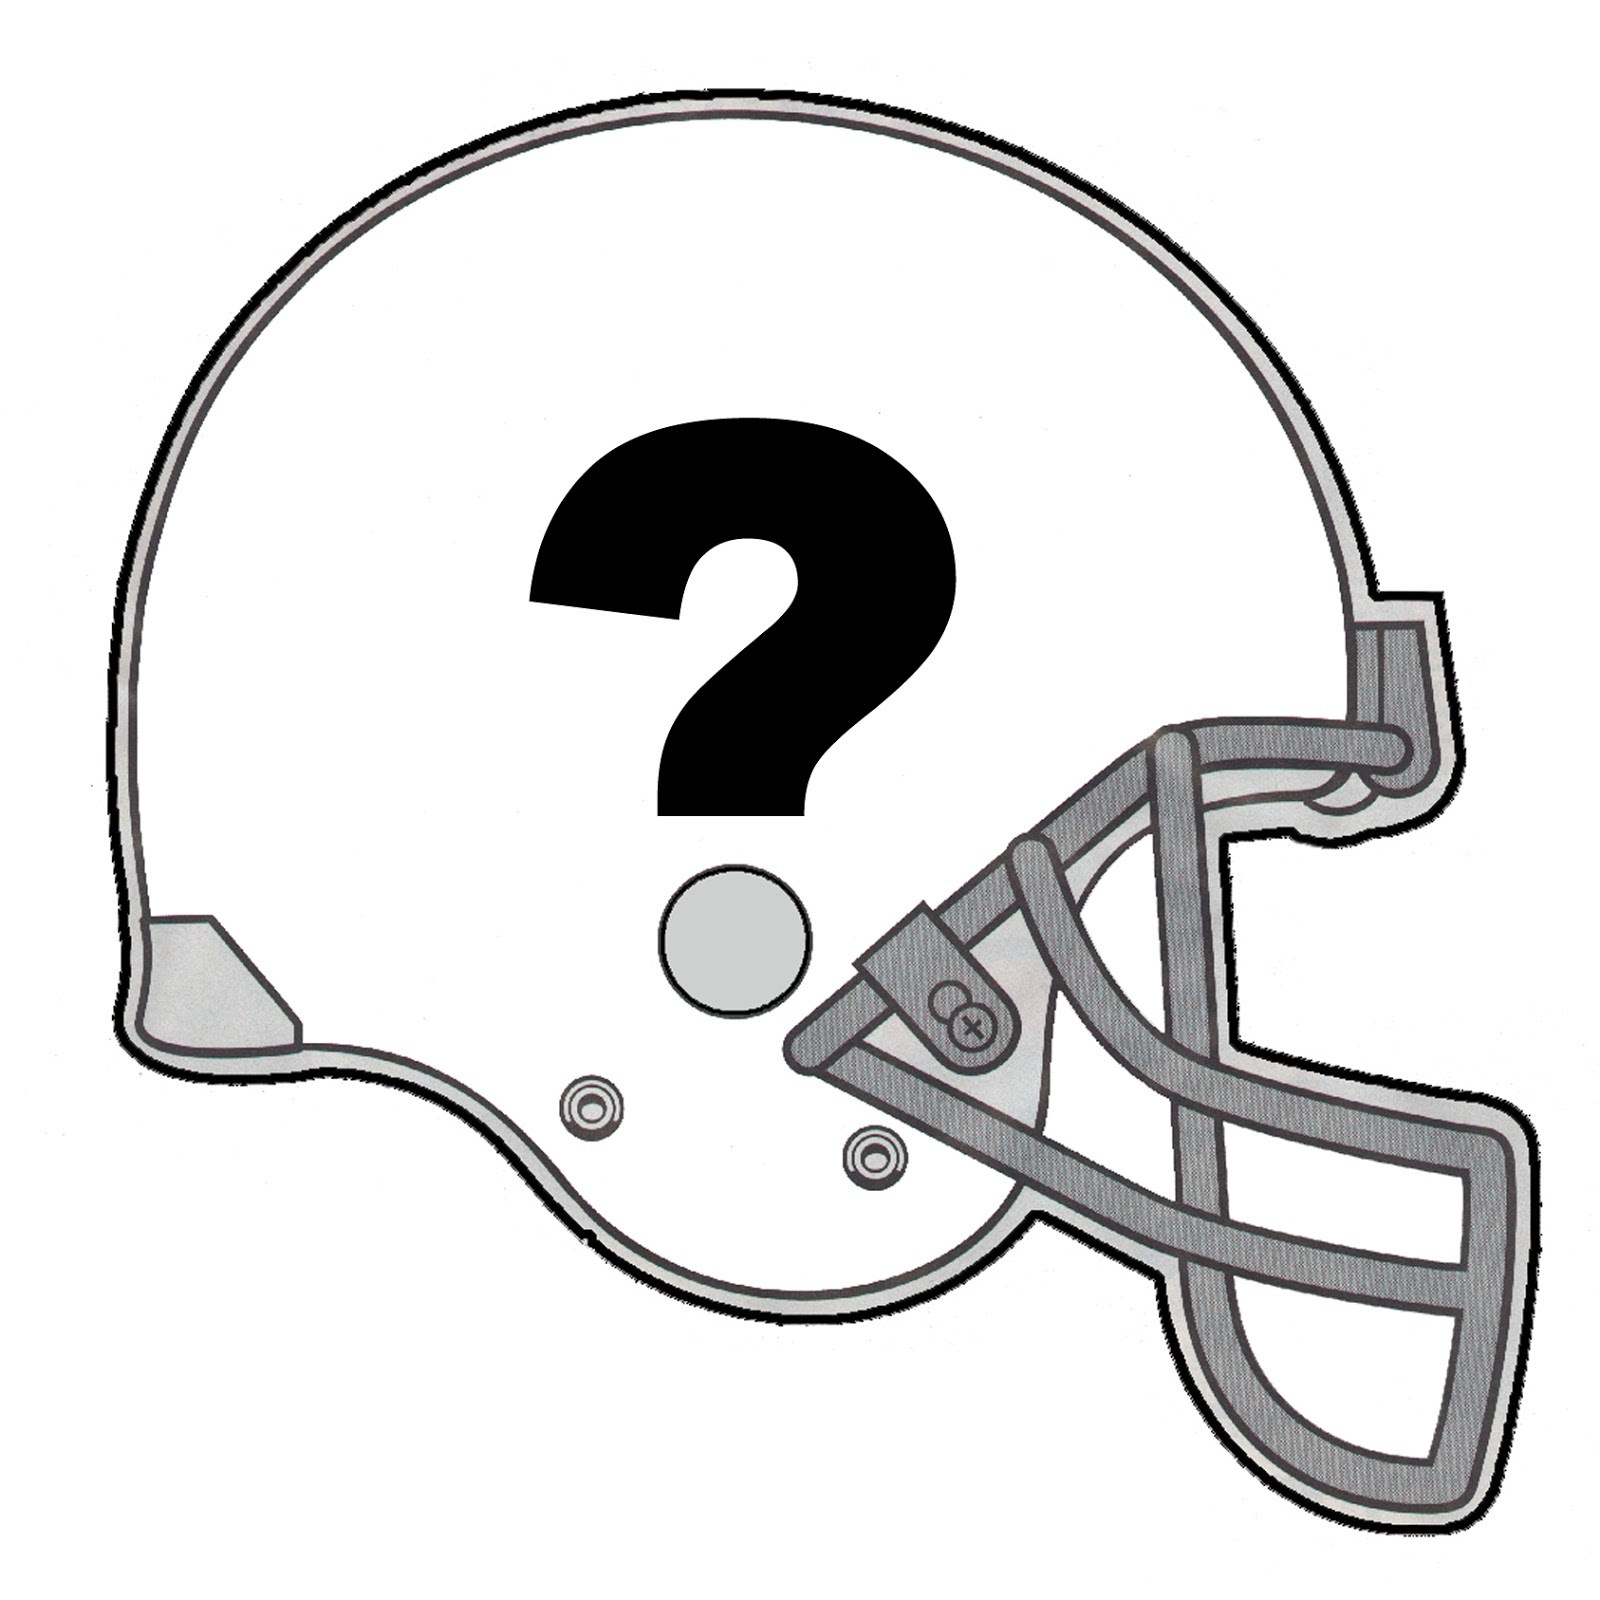 Football Helmet With Number 16 Clipart.